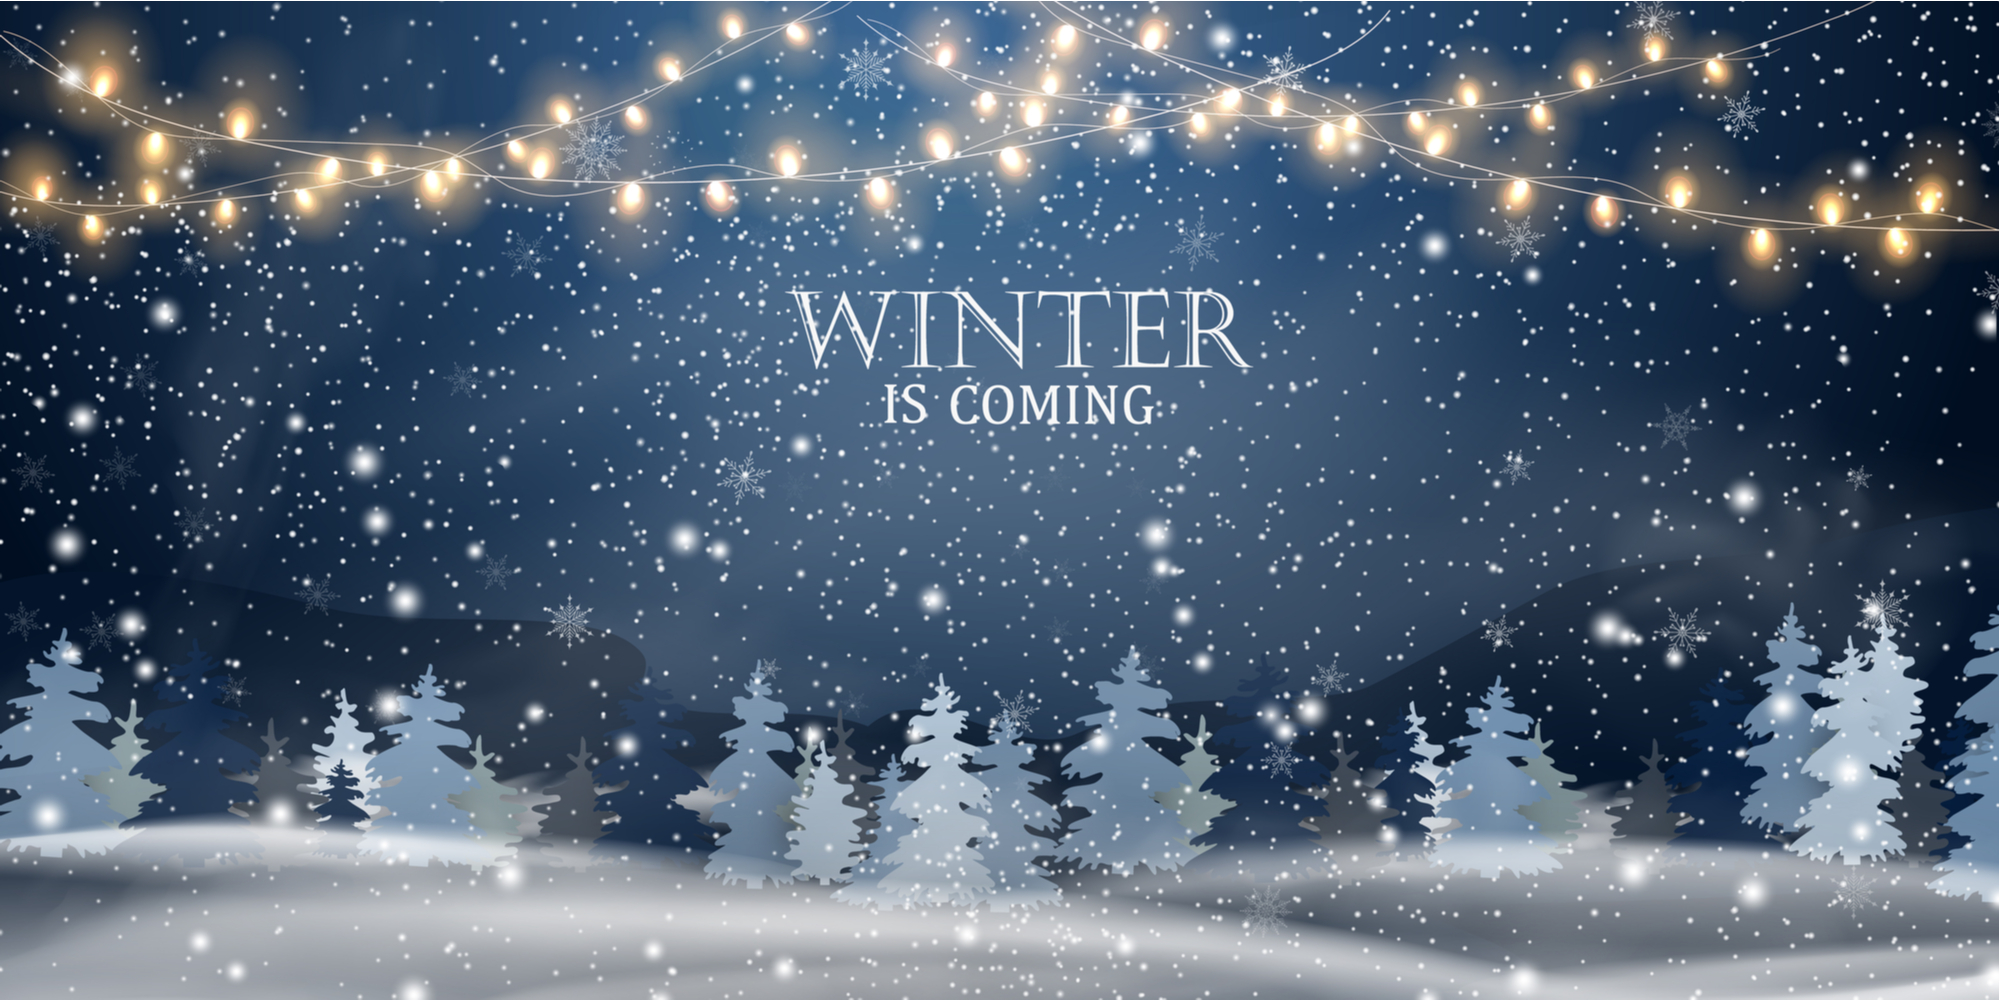 Natural Complexions Christmas Shop Winter Image